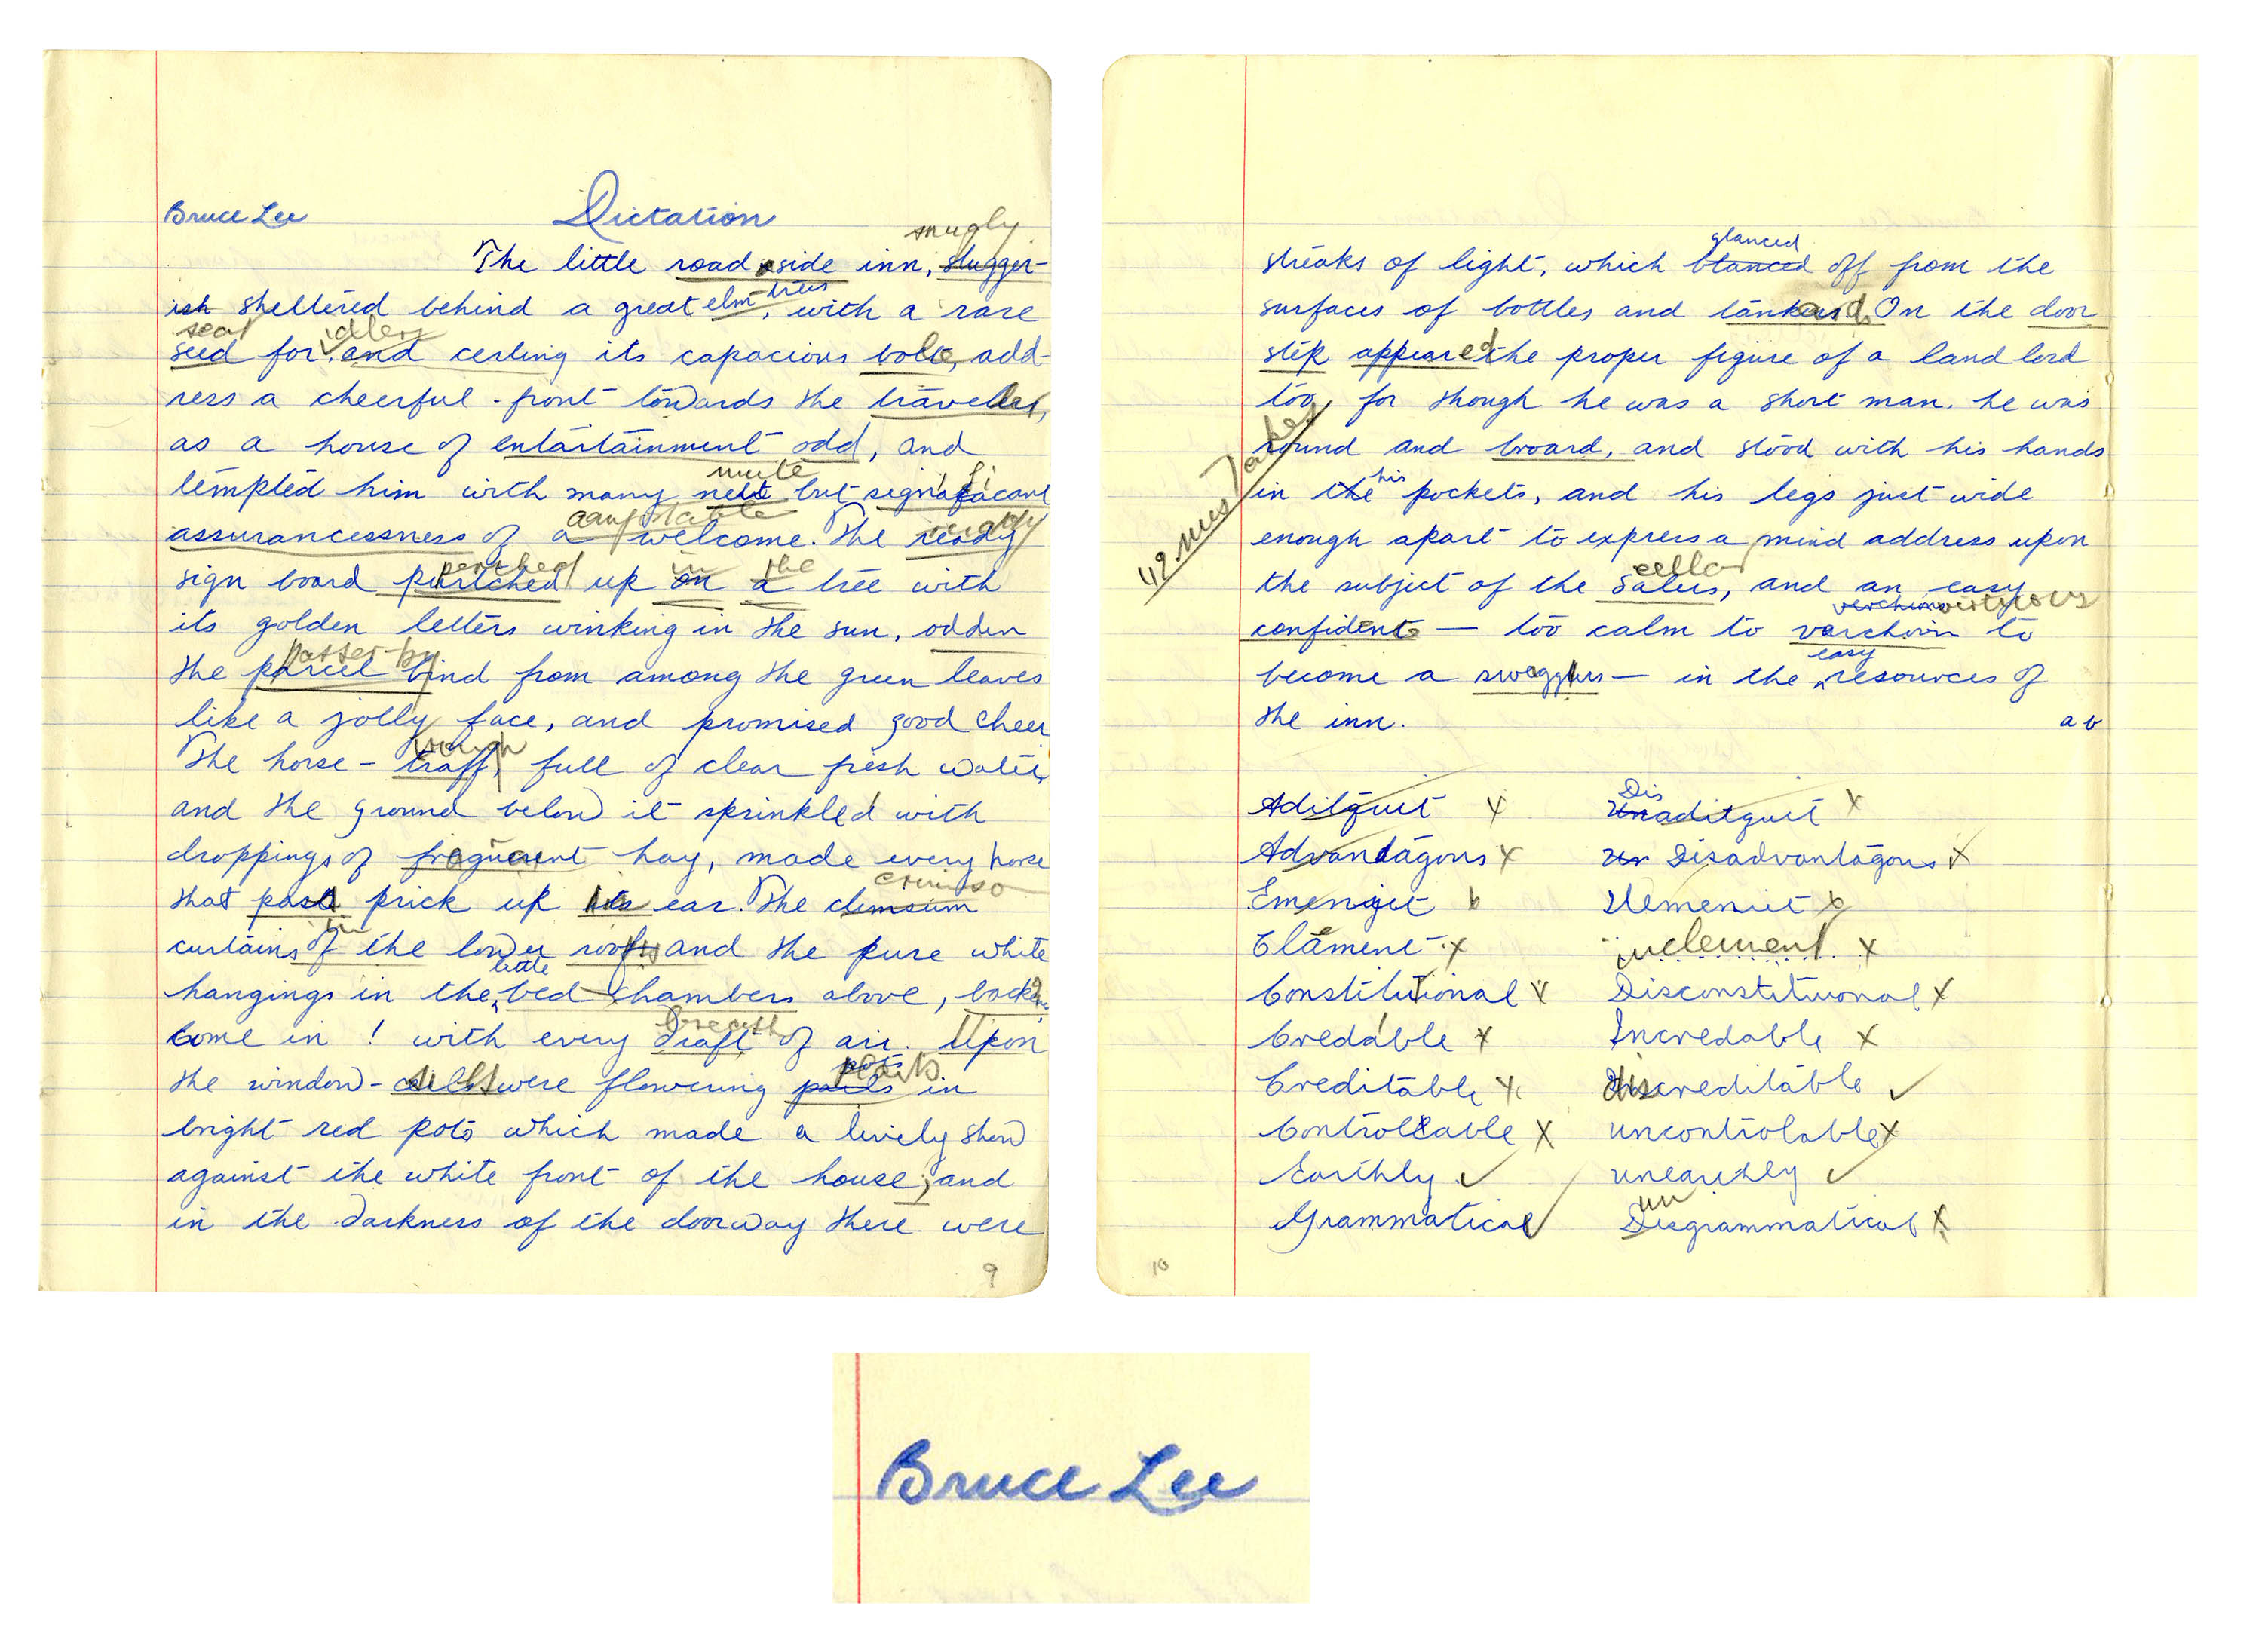 006 Essay Example Bruce Lee Signed 52850 Lg On Fearsome Handwriting Short Importance Of Good In Hindi Gujarati Full